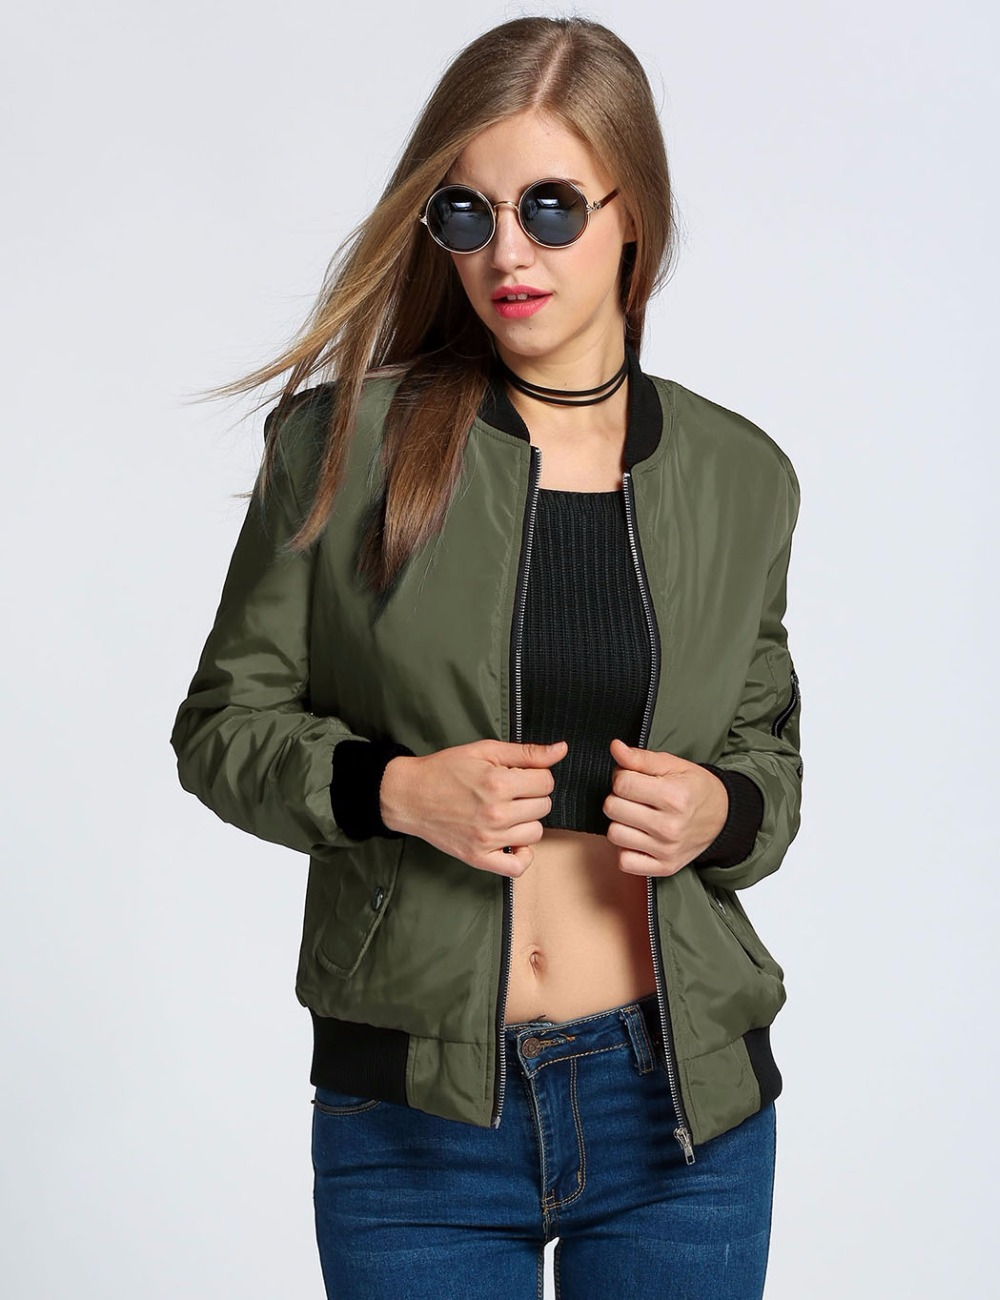 223cff486 US $25.46 |New Spring Autumn Women Basic Coat Female Bomber Pilot Baseball  Jacket Lady Long Sleeve Outerwear Clothing Clothes Manteau Femme-in Basic  ...